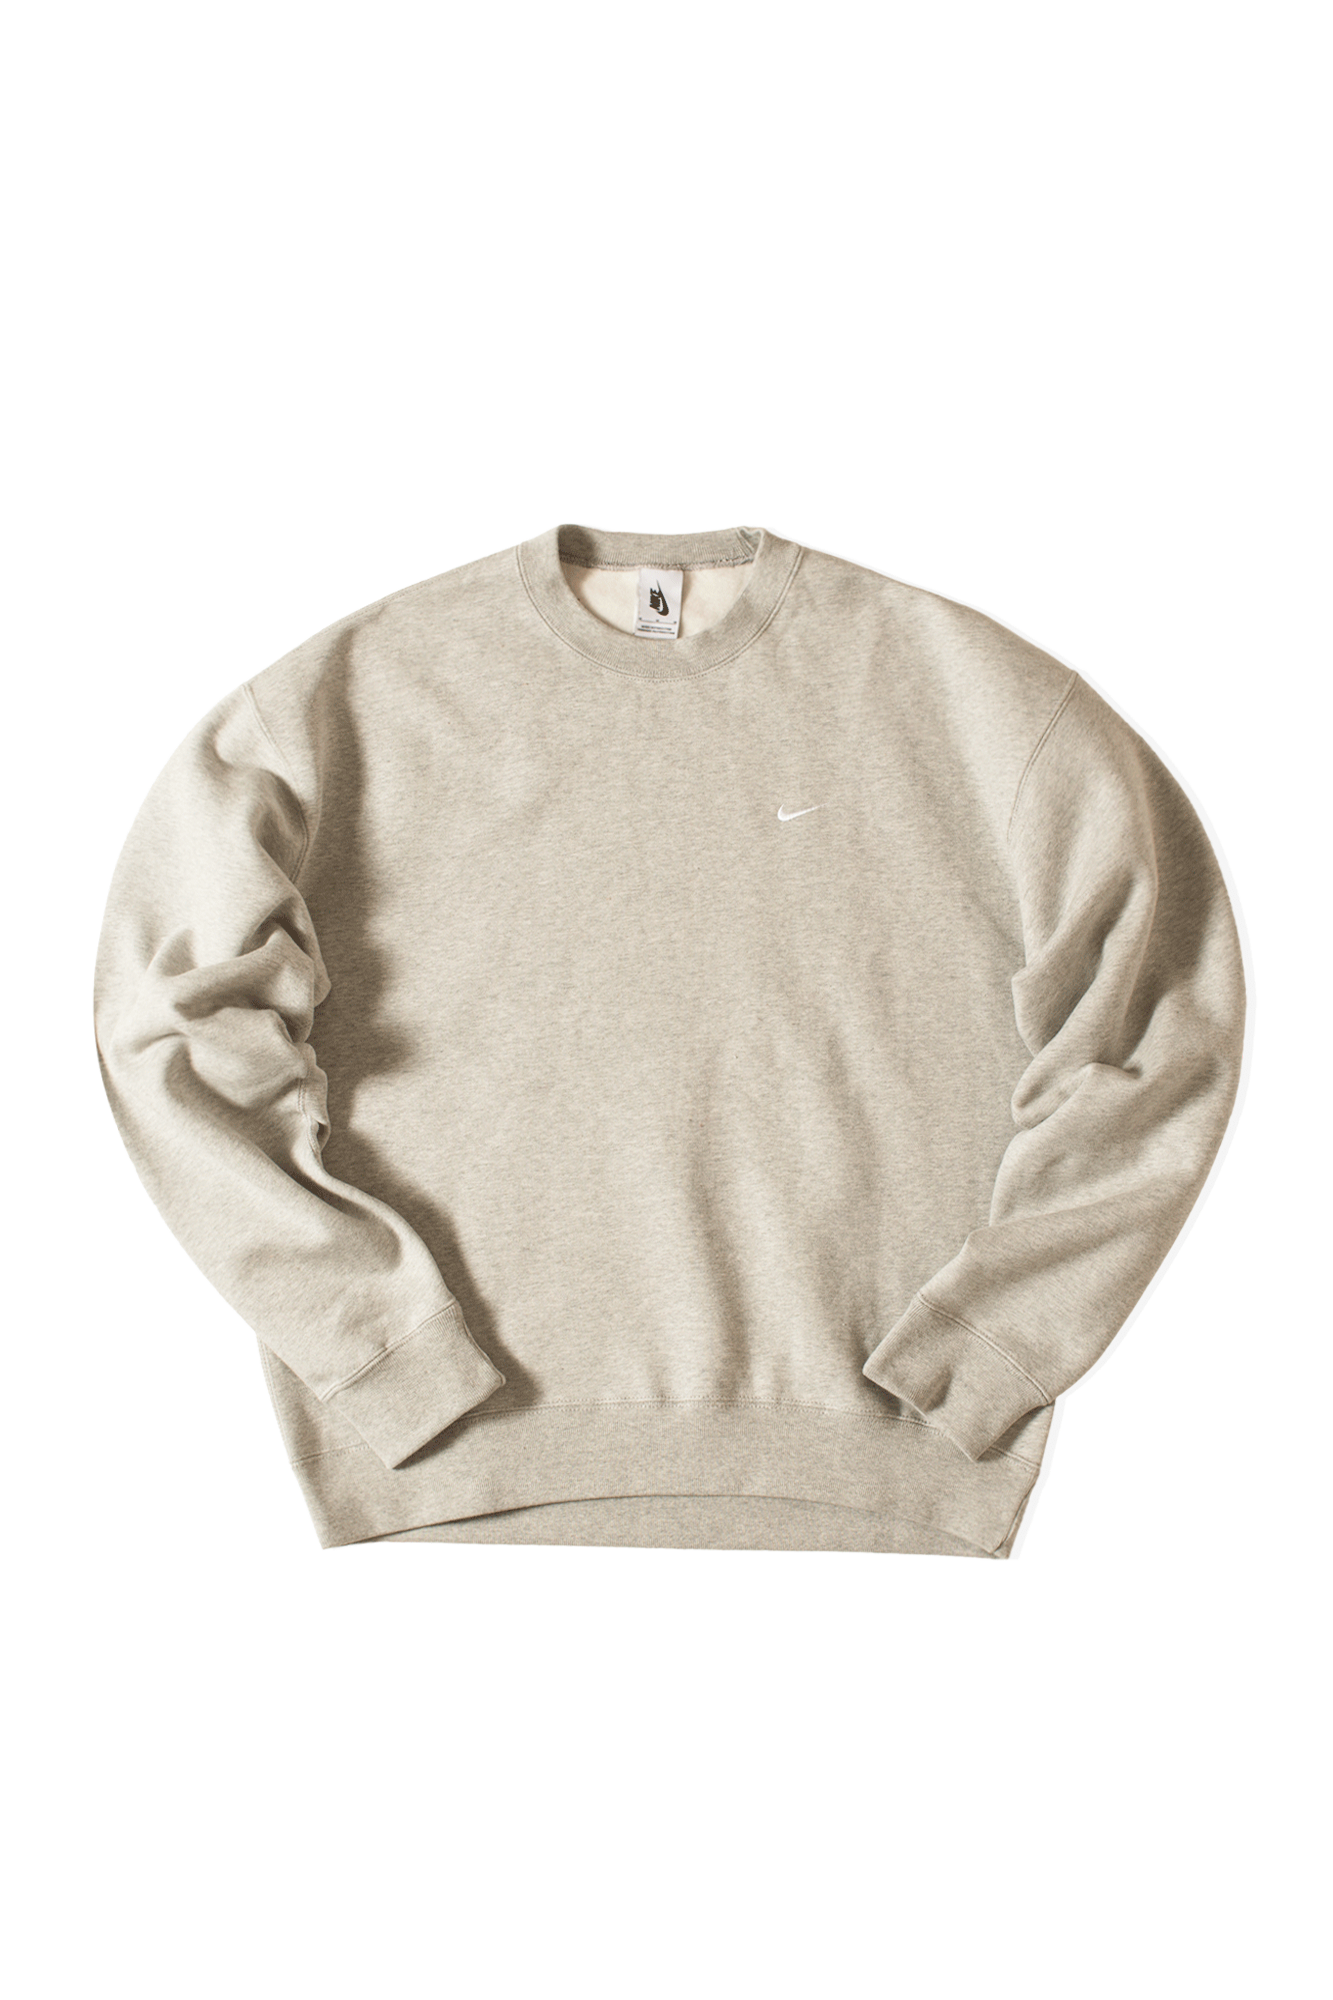 M Nrg Crewneck Sweatshirt Fleece Grigio